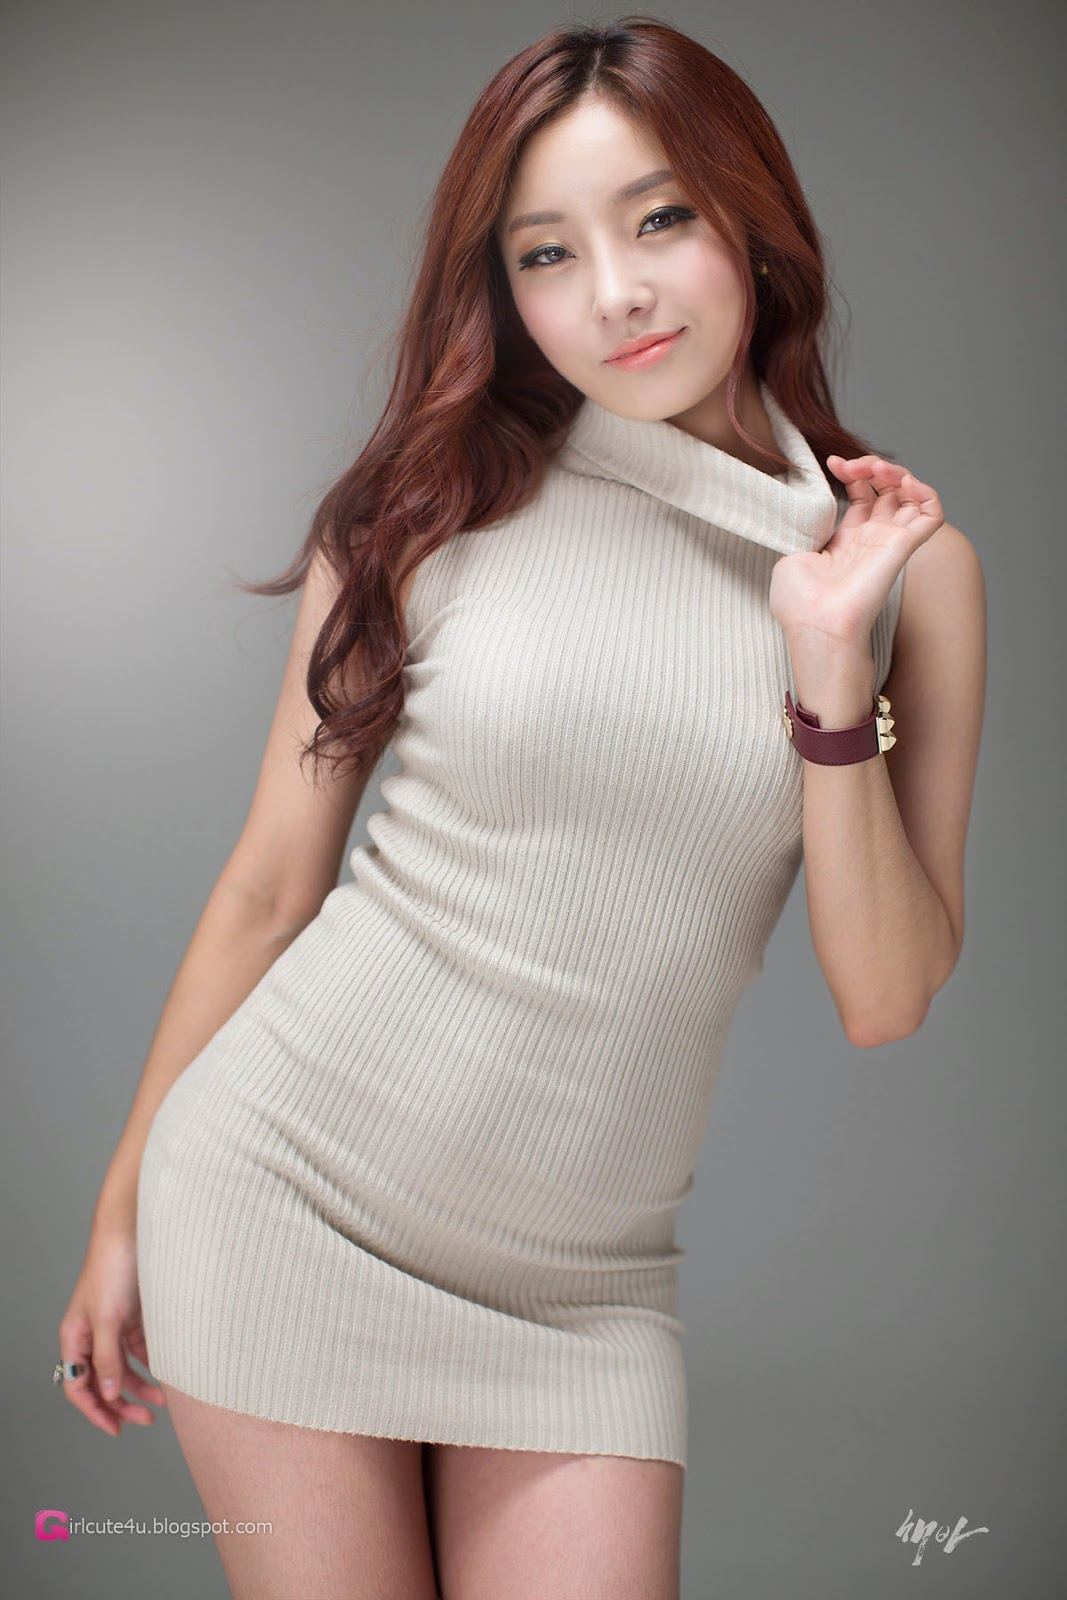 1 Just the usual hot stuff from Lee Hyun Ji - very cute asian girl-girlcute4u.blogspot.com